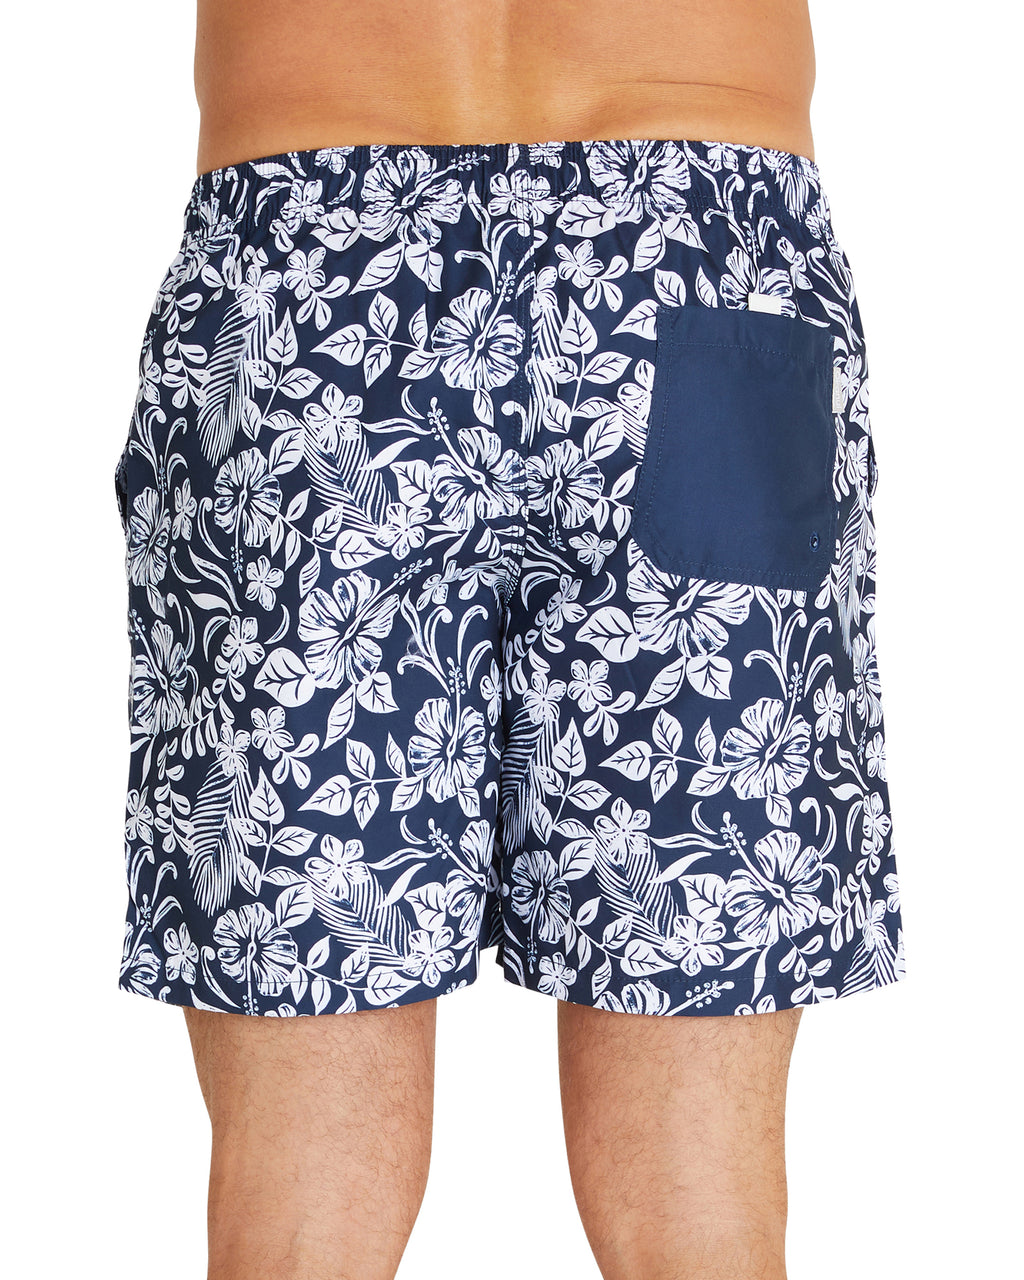 Swim Short - Sands - Navy